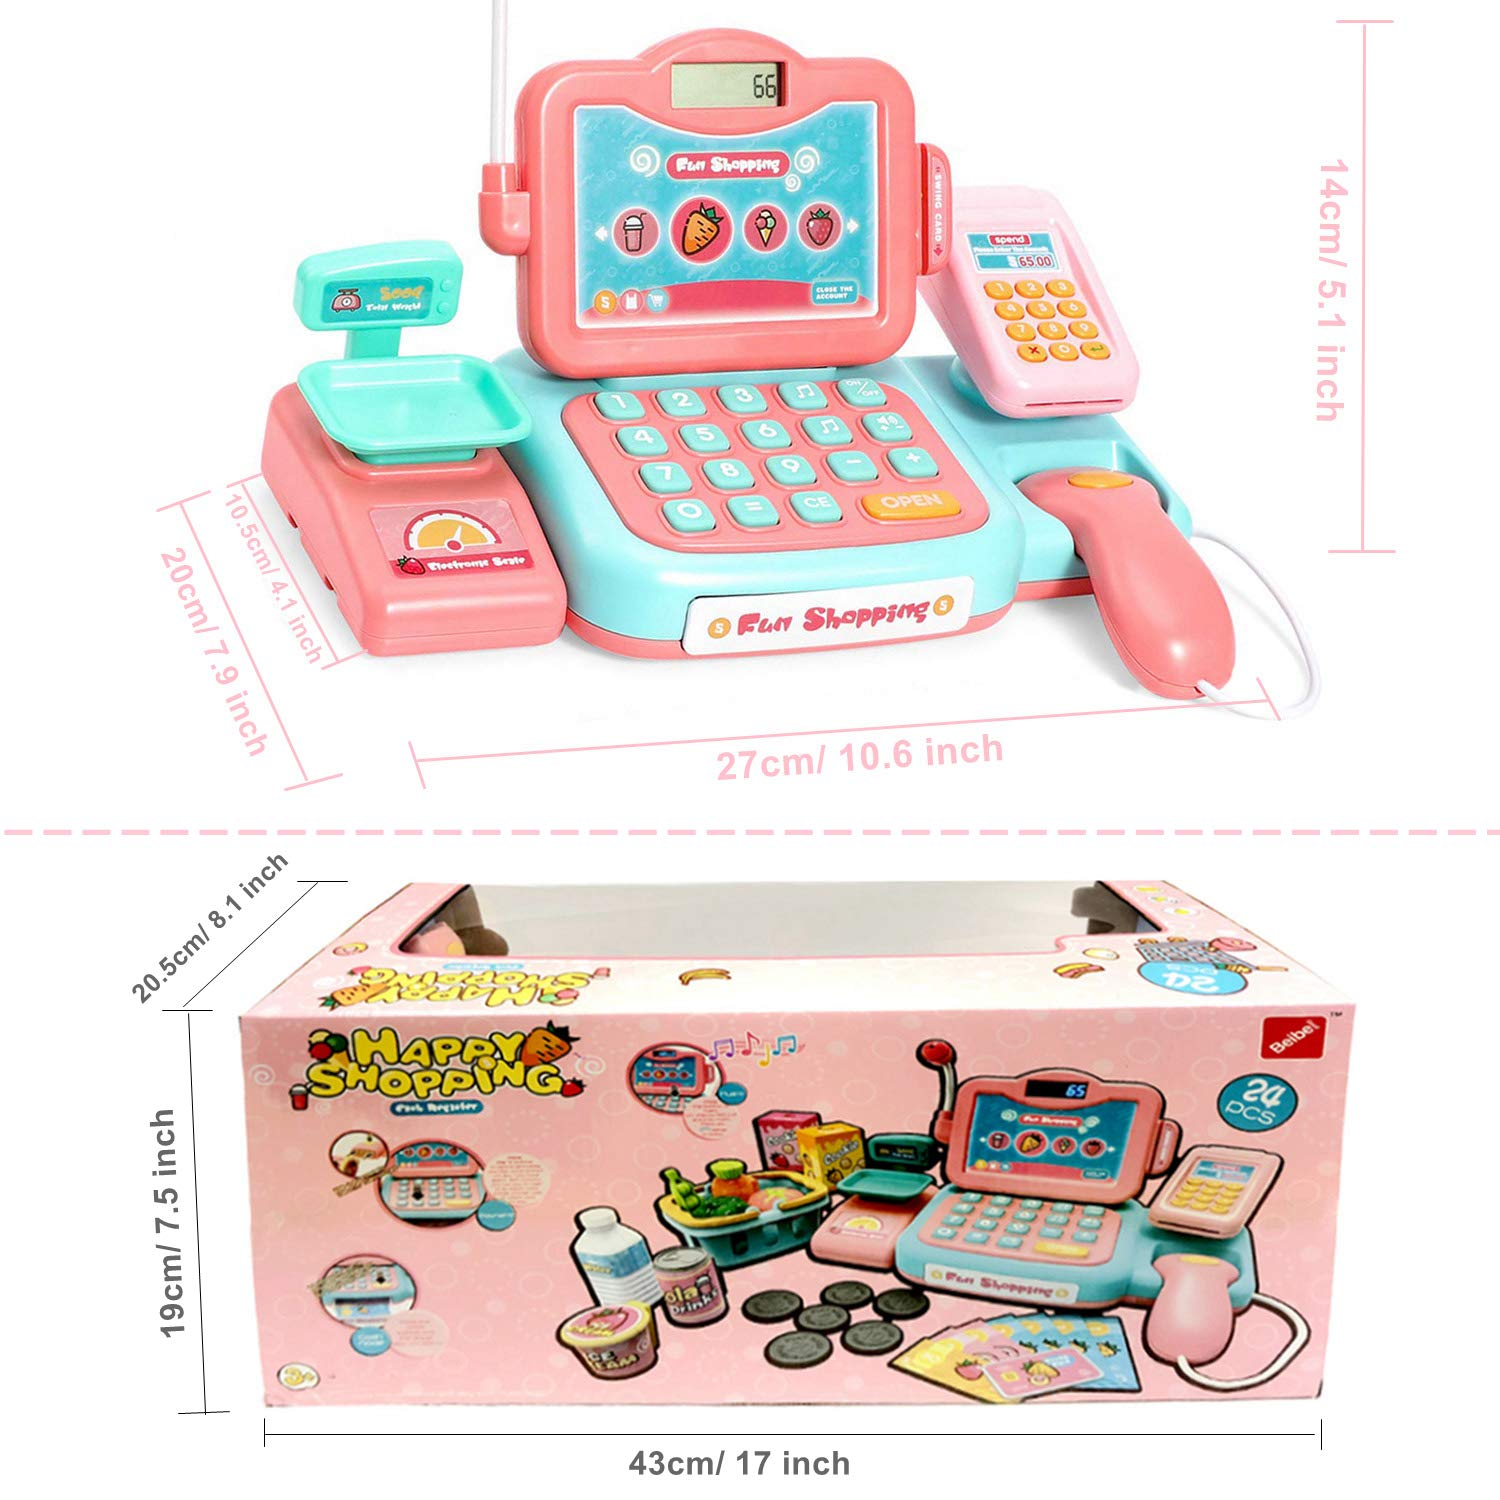 YYoomi Pretend Play Educational Cash Register Toy Classic Counting Toy with Microphone/ Calculator/ Scanner/ Sound/ Music for Kids & Toddlers & Preschoolers by YYoomi (Image #7)